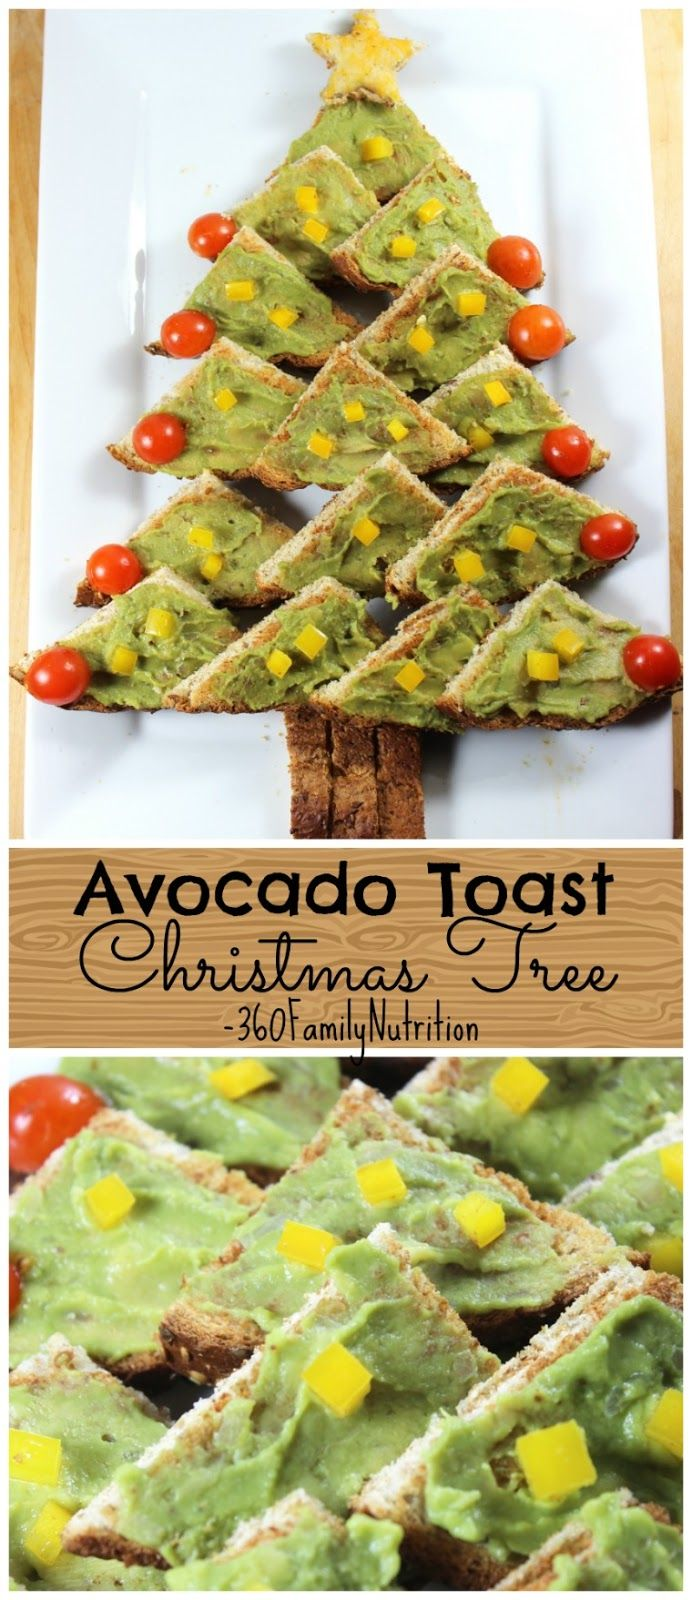 127 best Holiday Hors D'oeuvres images on Pinterest | Appetizer ...